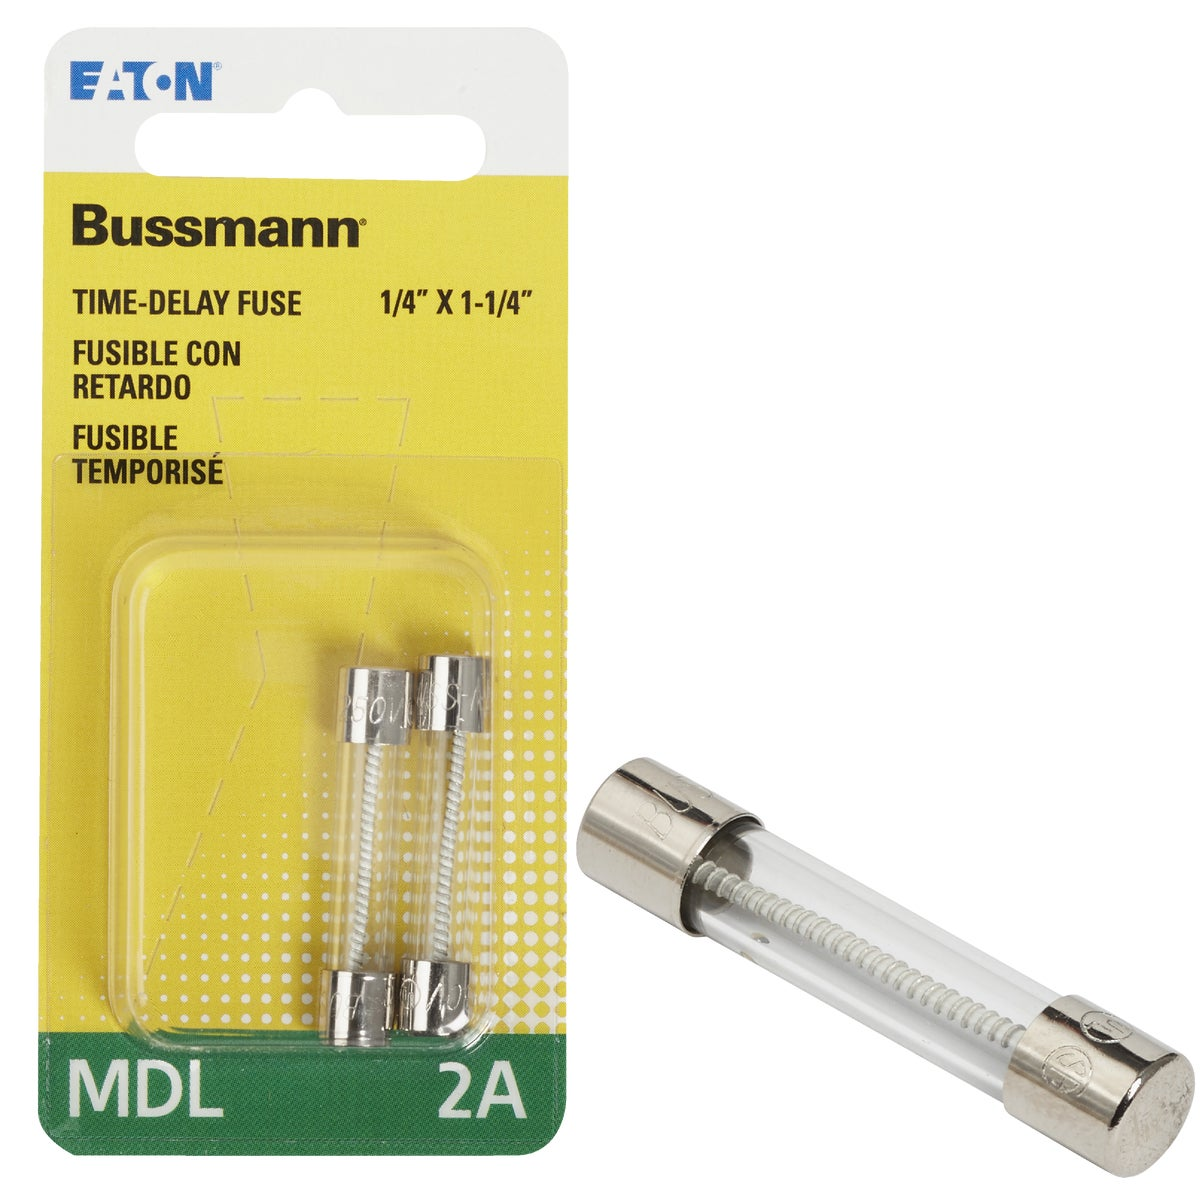 2A ELECTRONIC FUSE